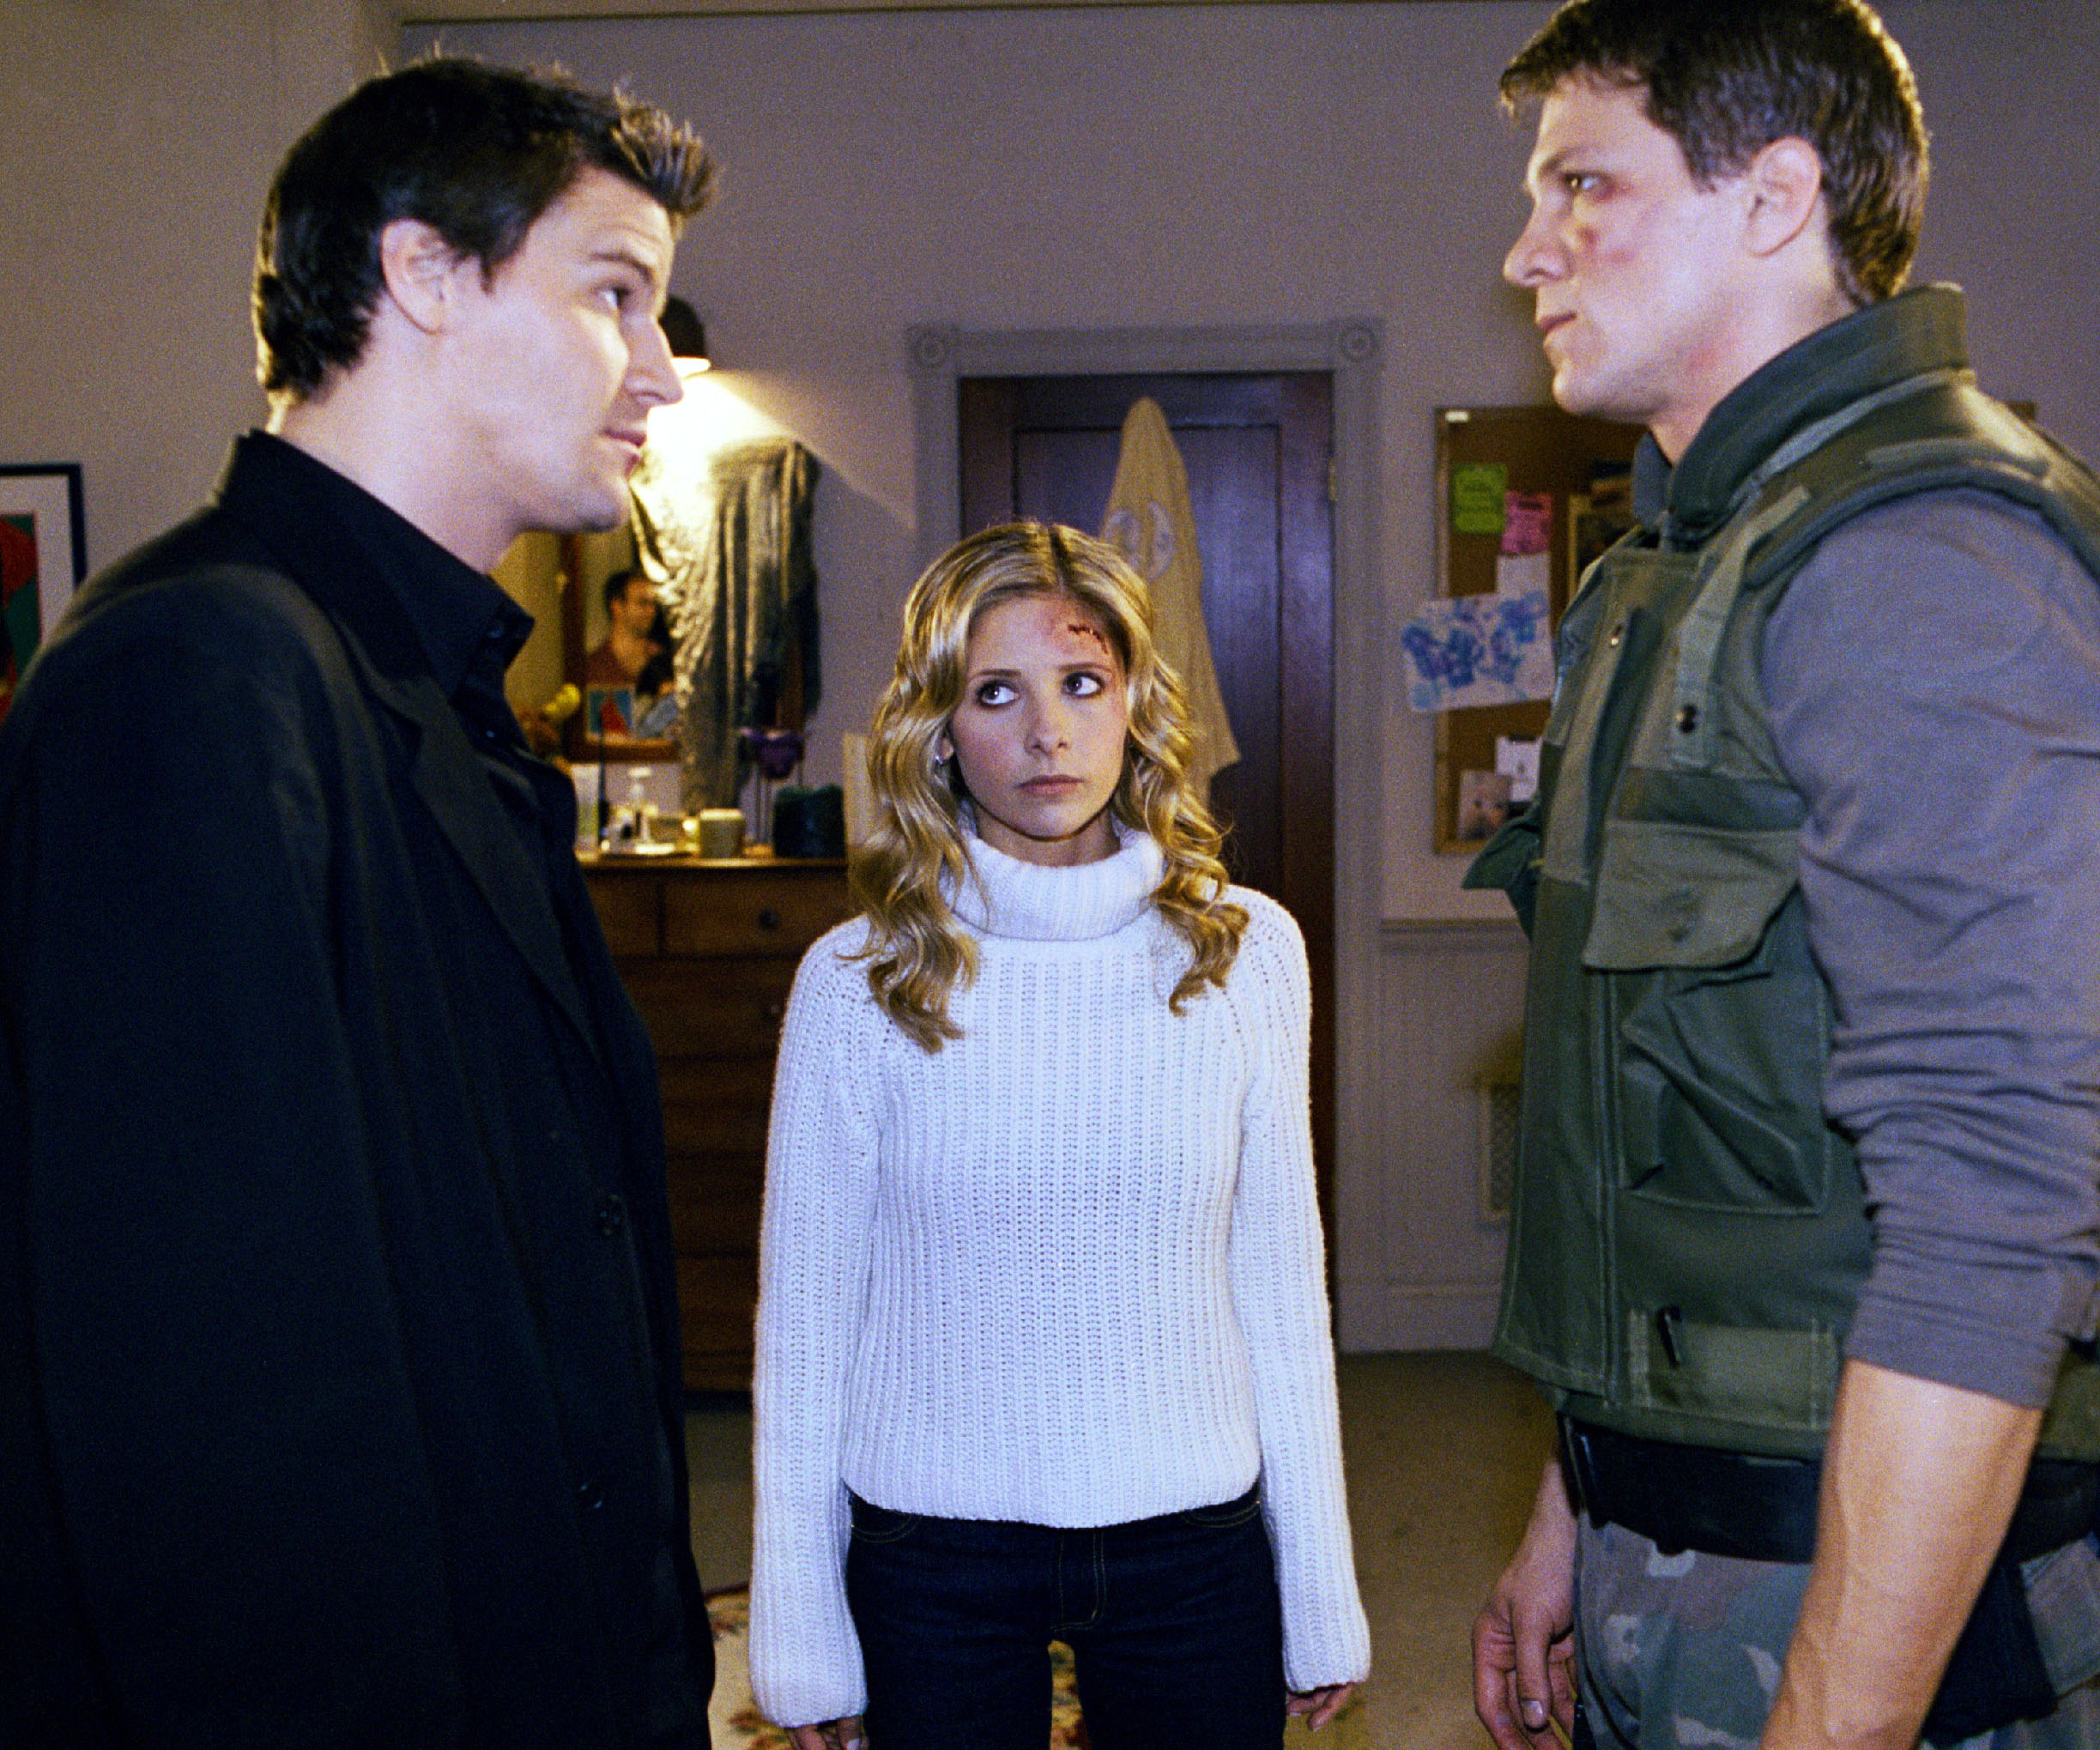 Fox wants Joss Whedon to revive 'Buffy the Vampire Slayer'